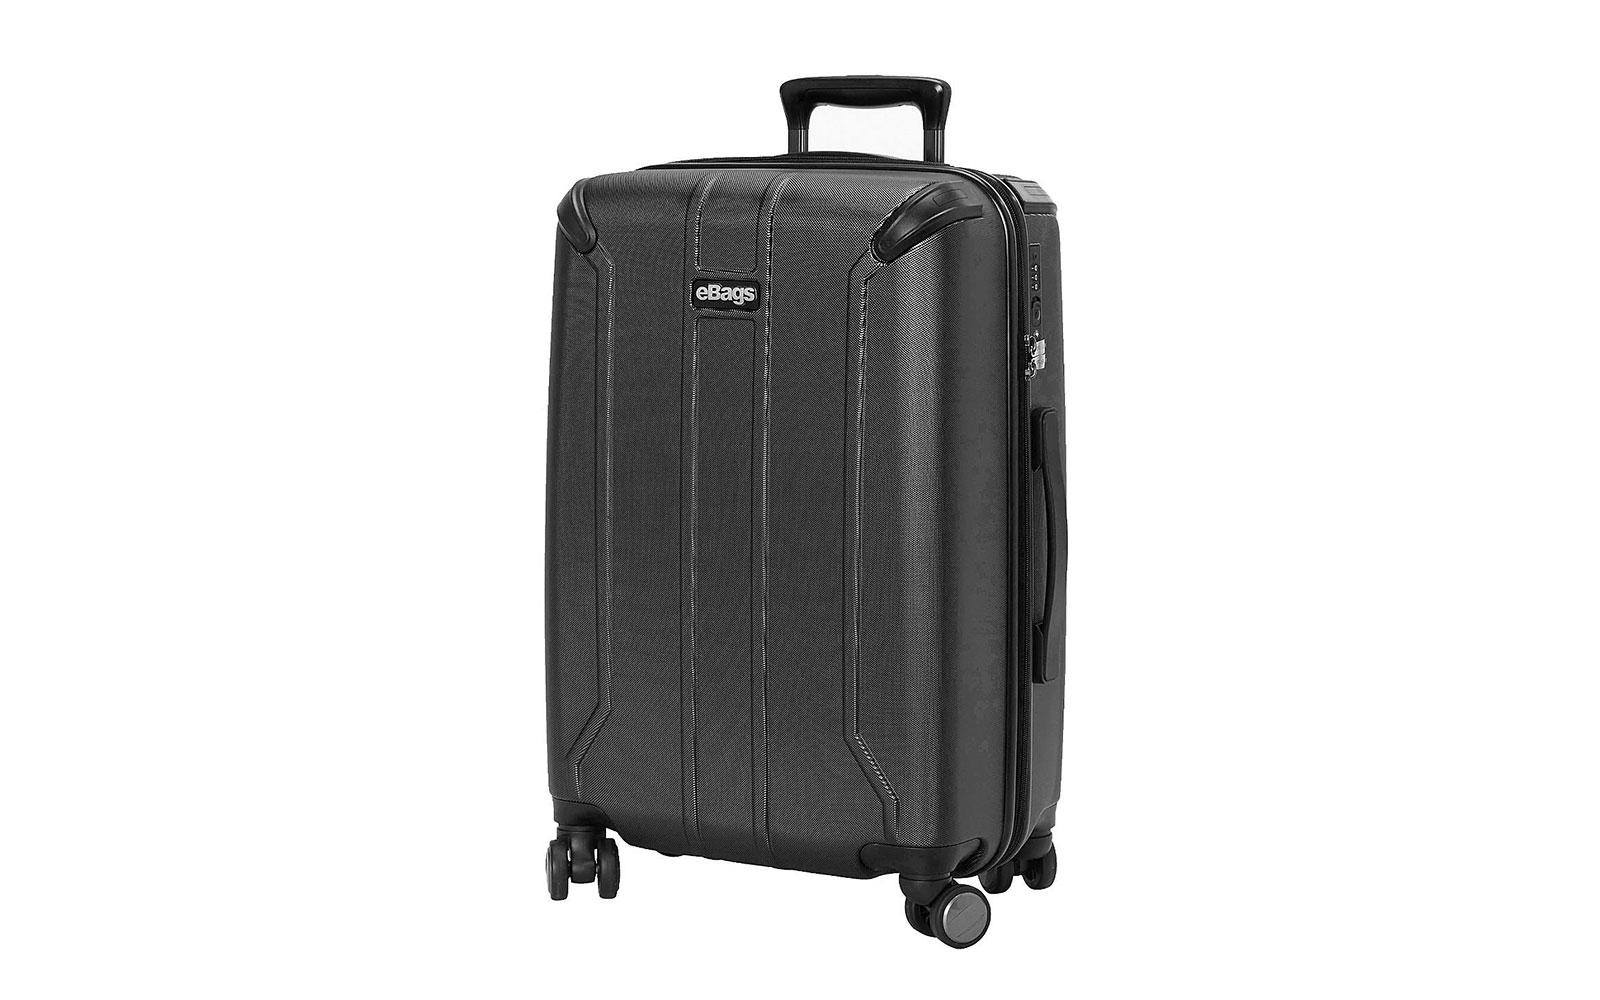 eBags eTech 3.0 Hardside Carry-On Spinner